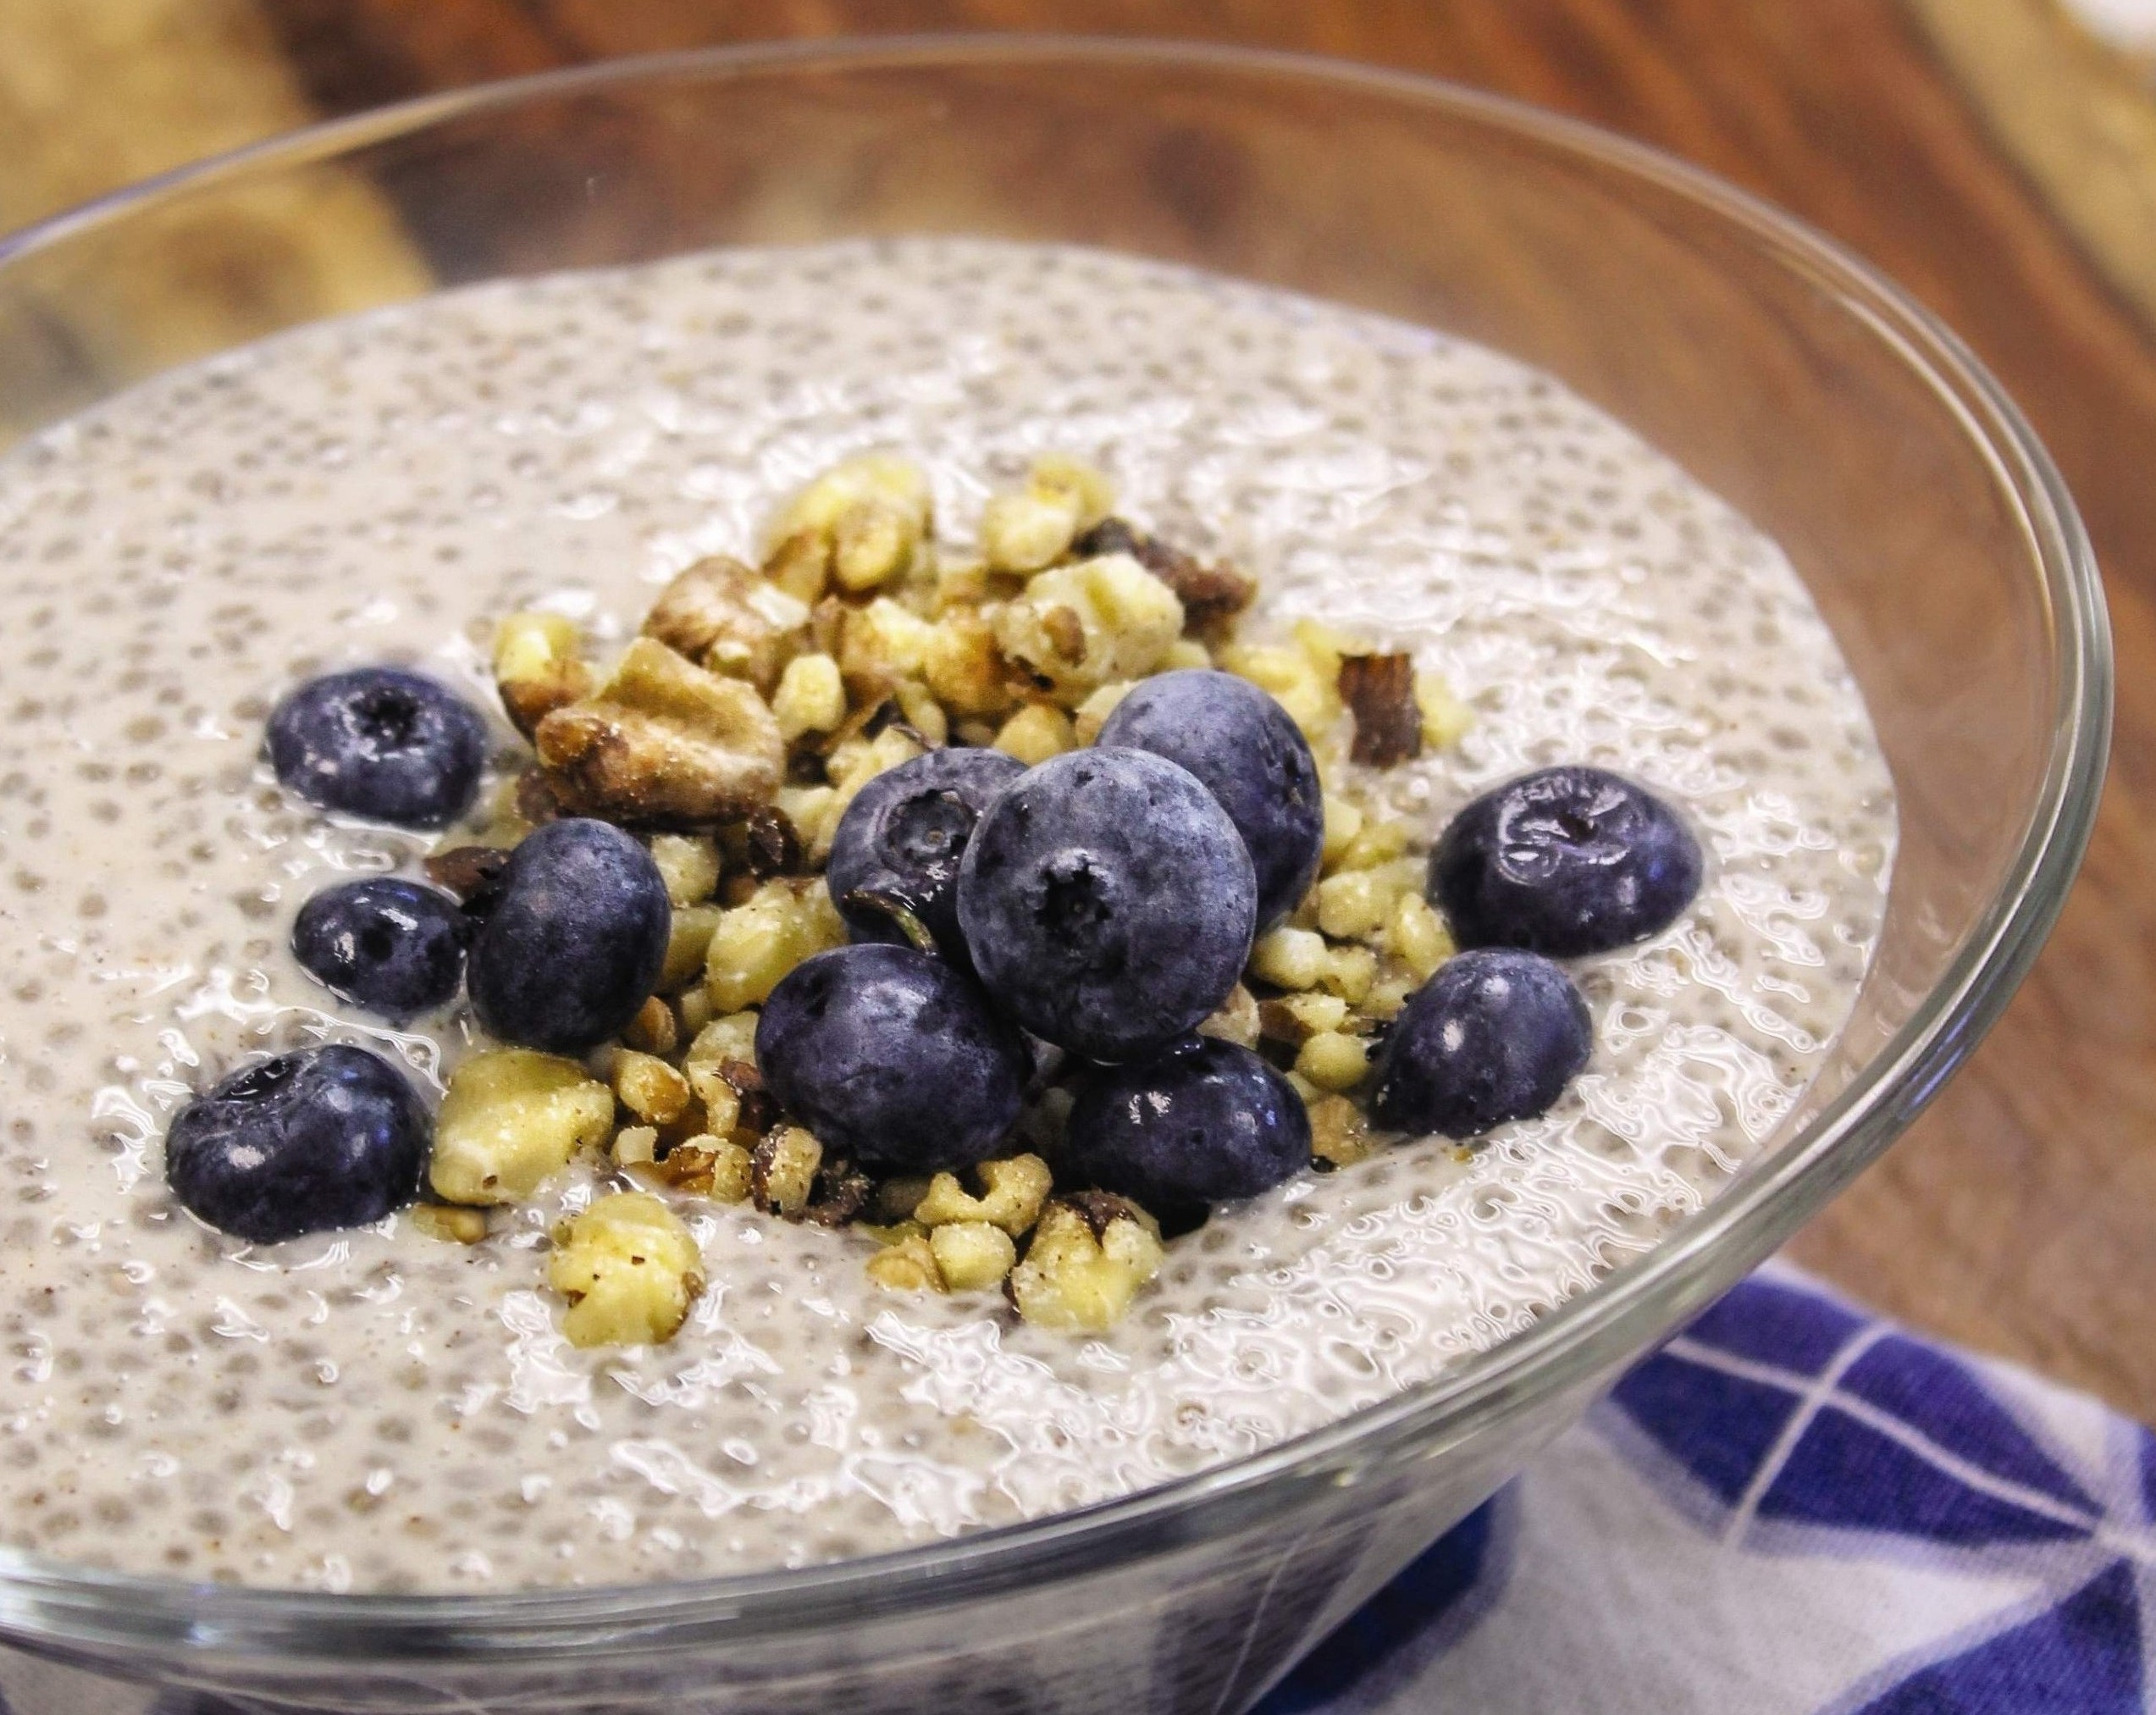 Chia pudding topped with fresh blueberries and walnuts.